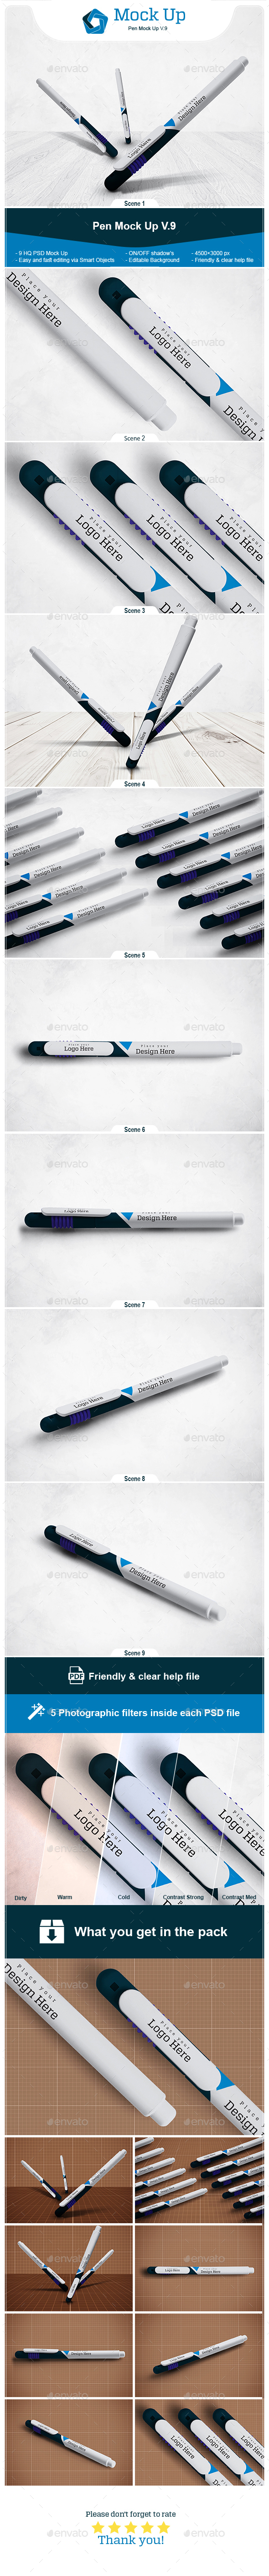 Pen Mock Up V.9 - Stationery Print